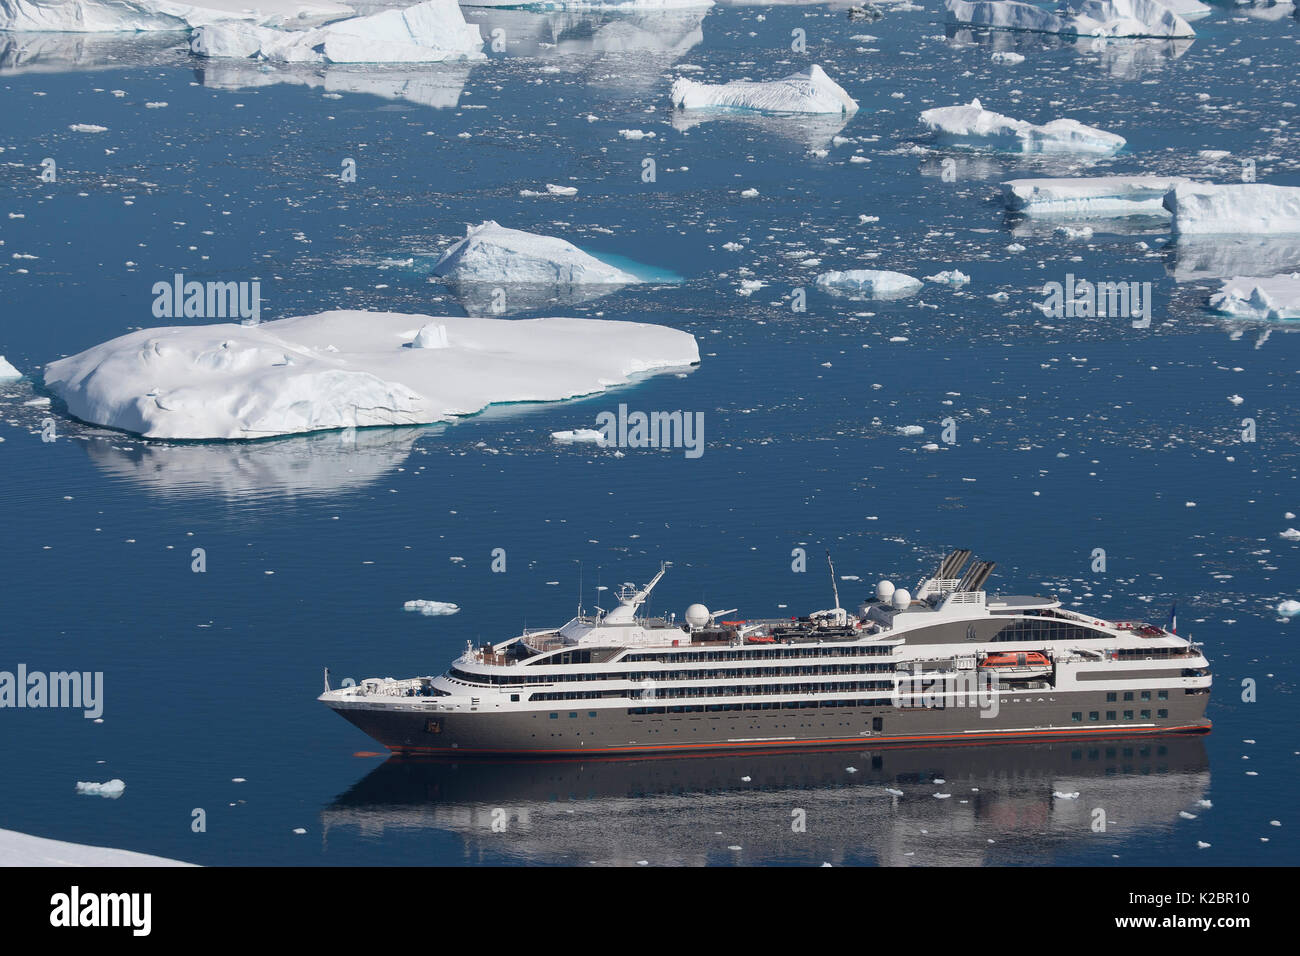 High angle view of  'Le Boreal' passenger vessel, from vantage point at Port Charcot, Booth Island, Antarctic Peninsula. February 2012.  All non-editorial uses must be cleared individually. - Stock Image